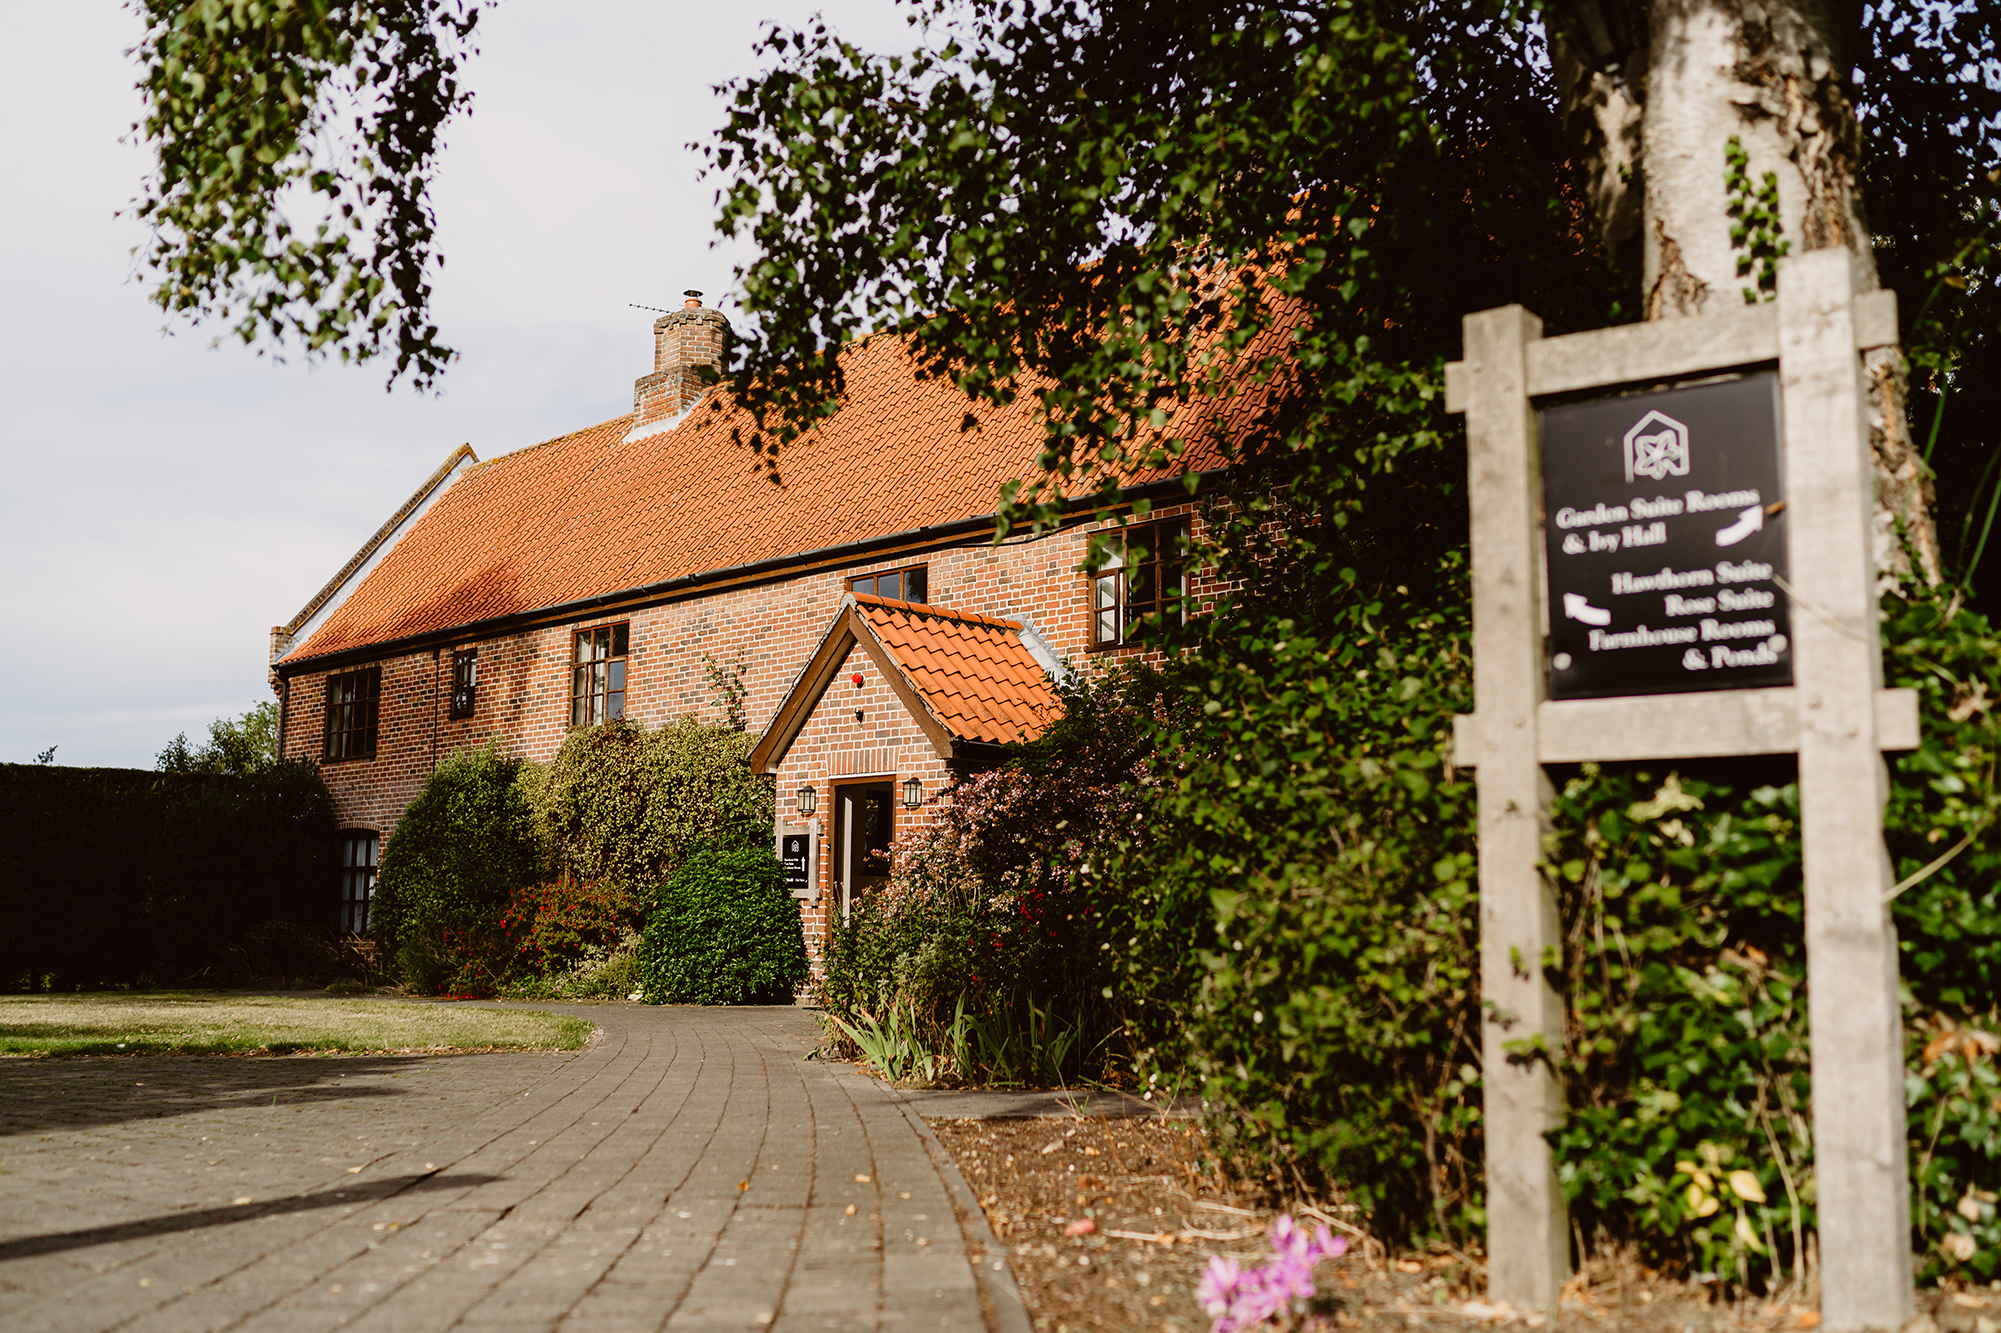 Ivy House Country Hotel Front Entrance and Driveway